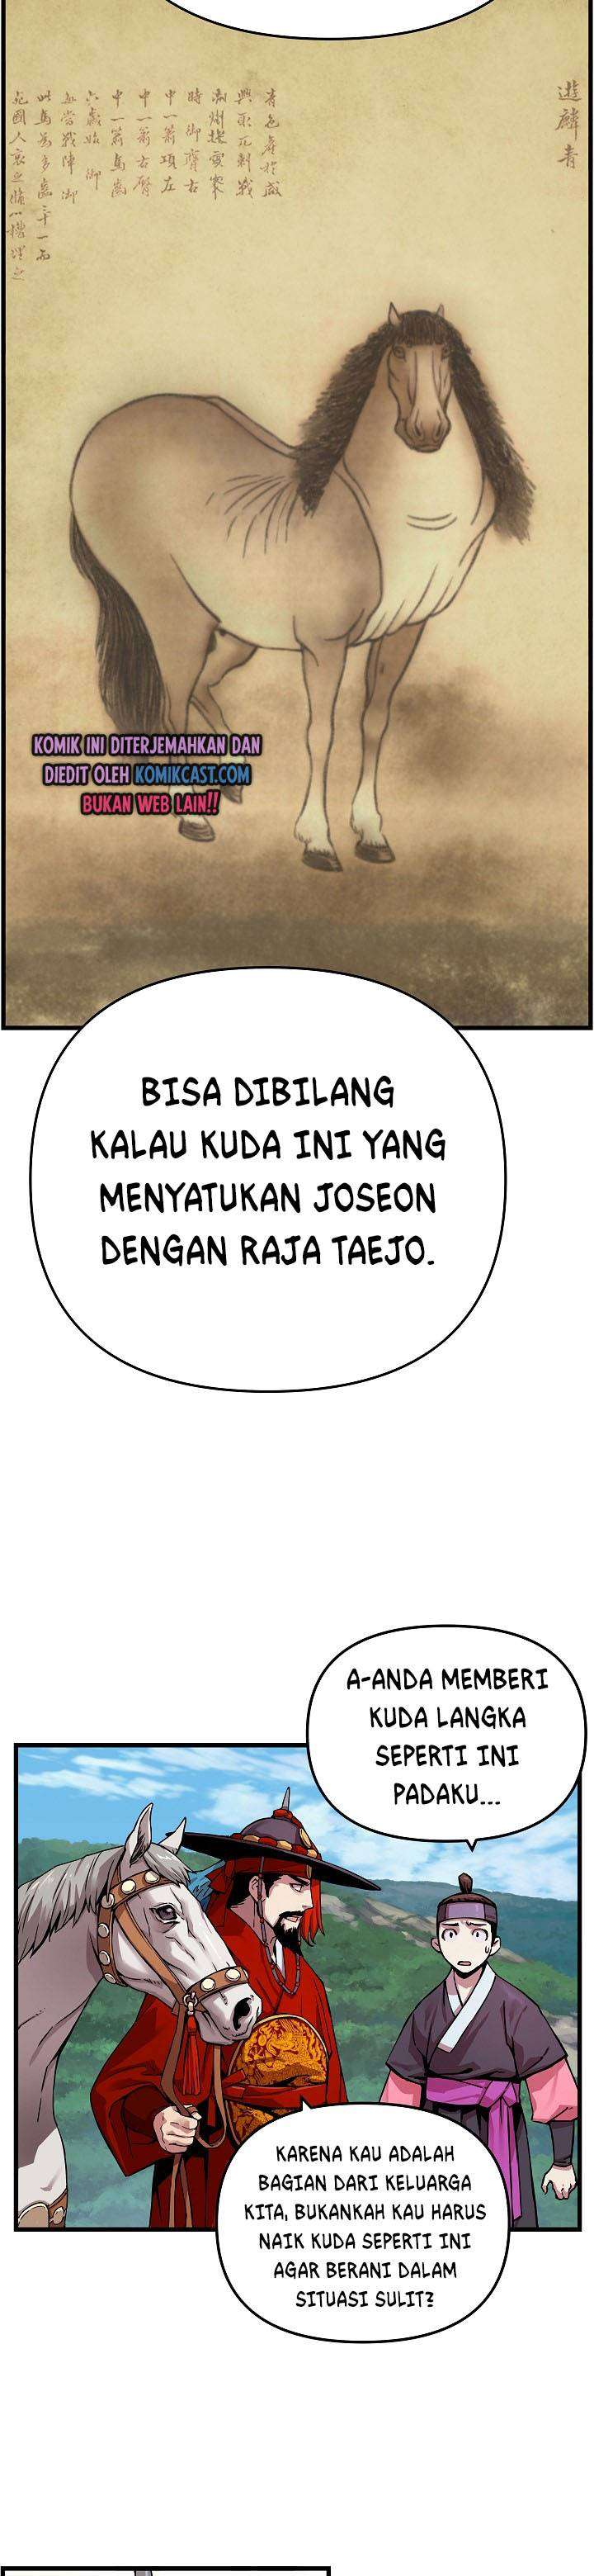 I Shall Live As a Prince Chapter 02 Bahasa Indonesia page 39